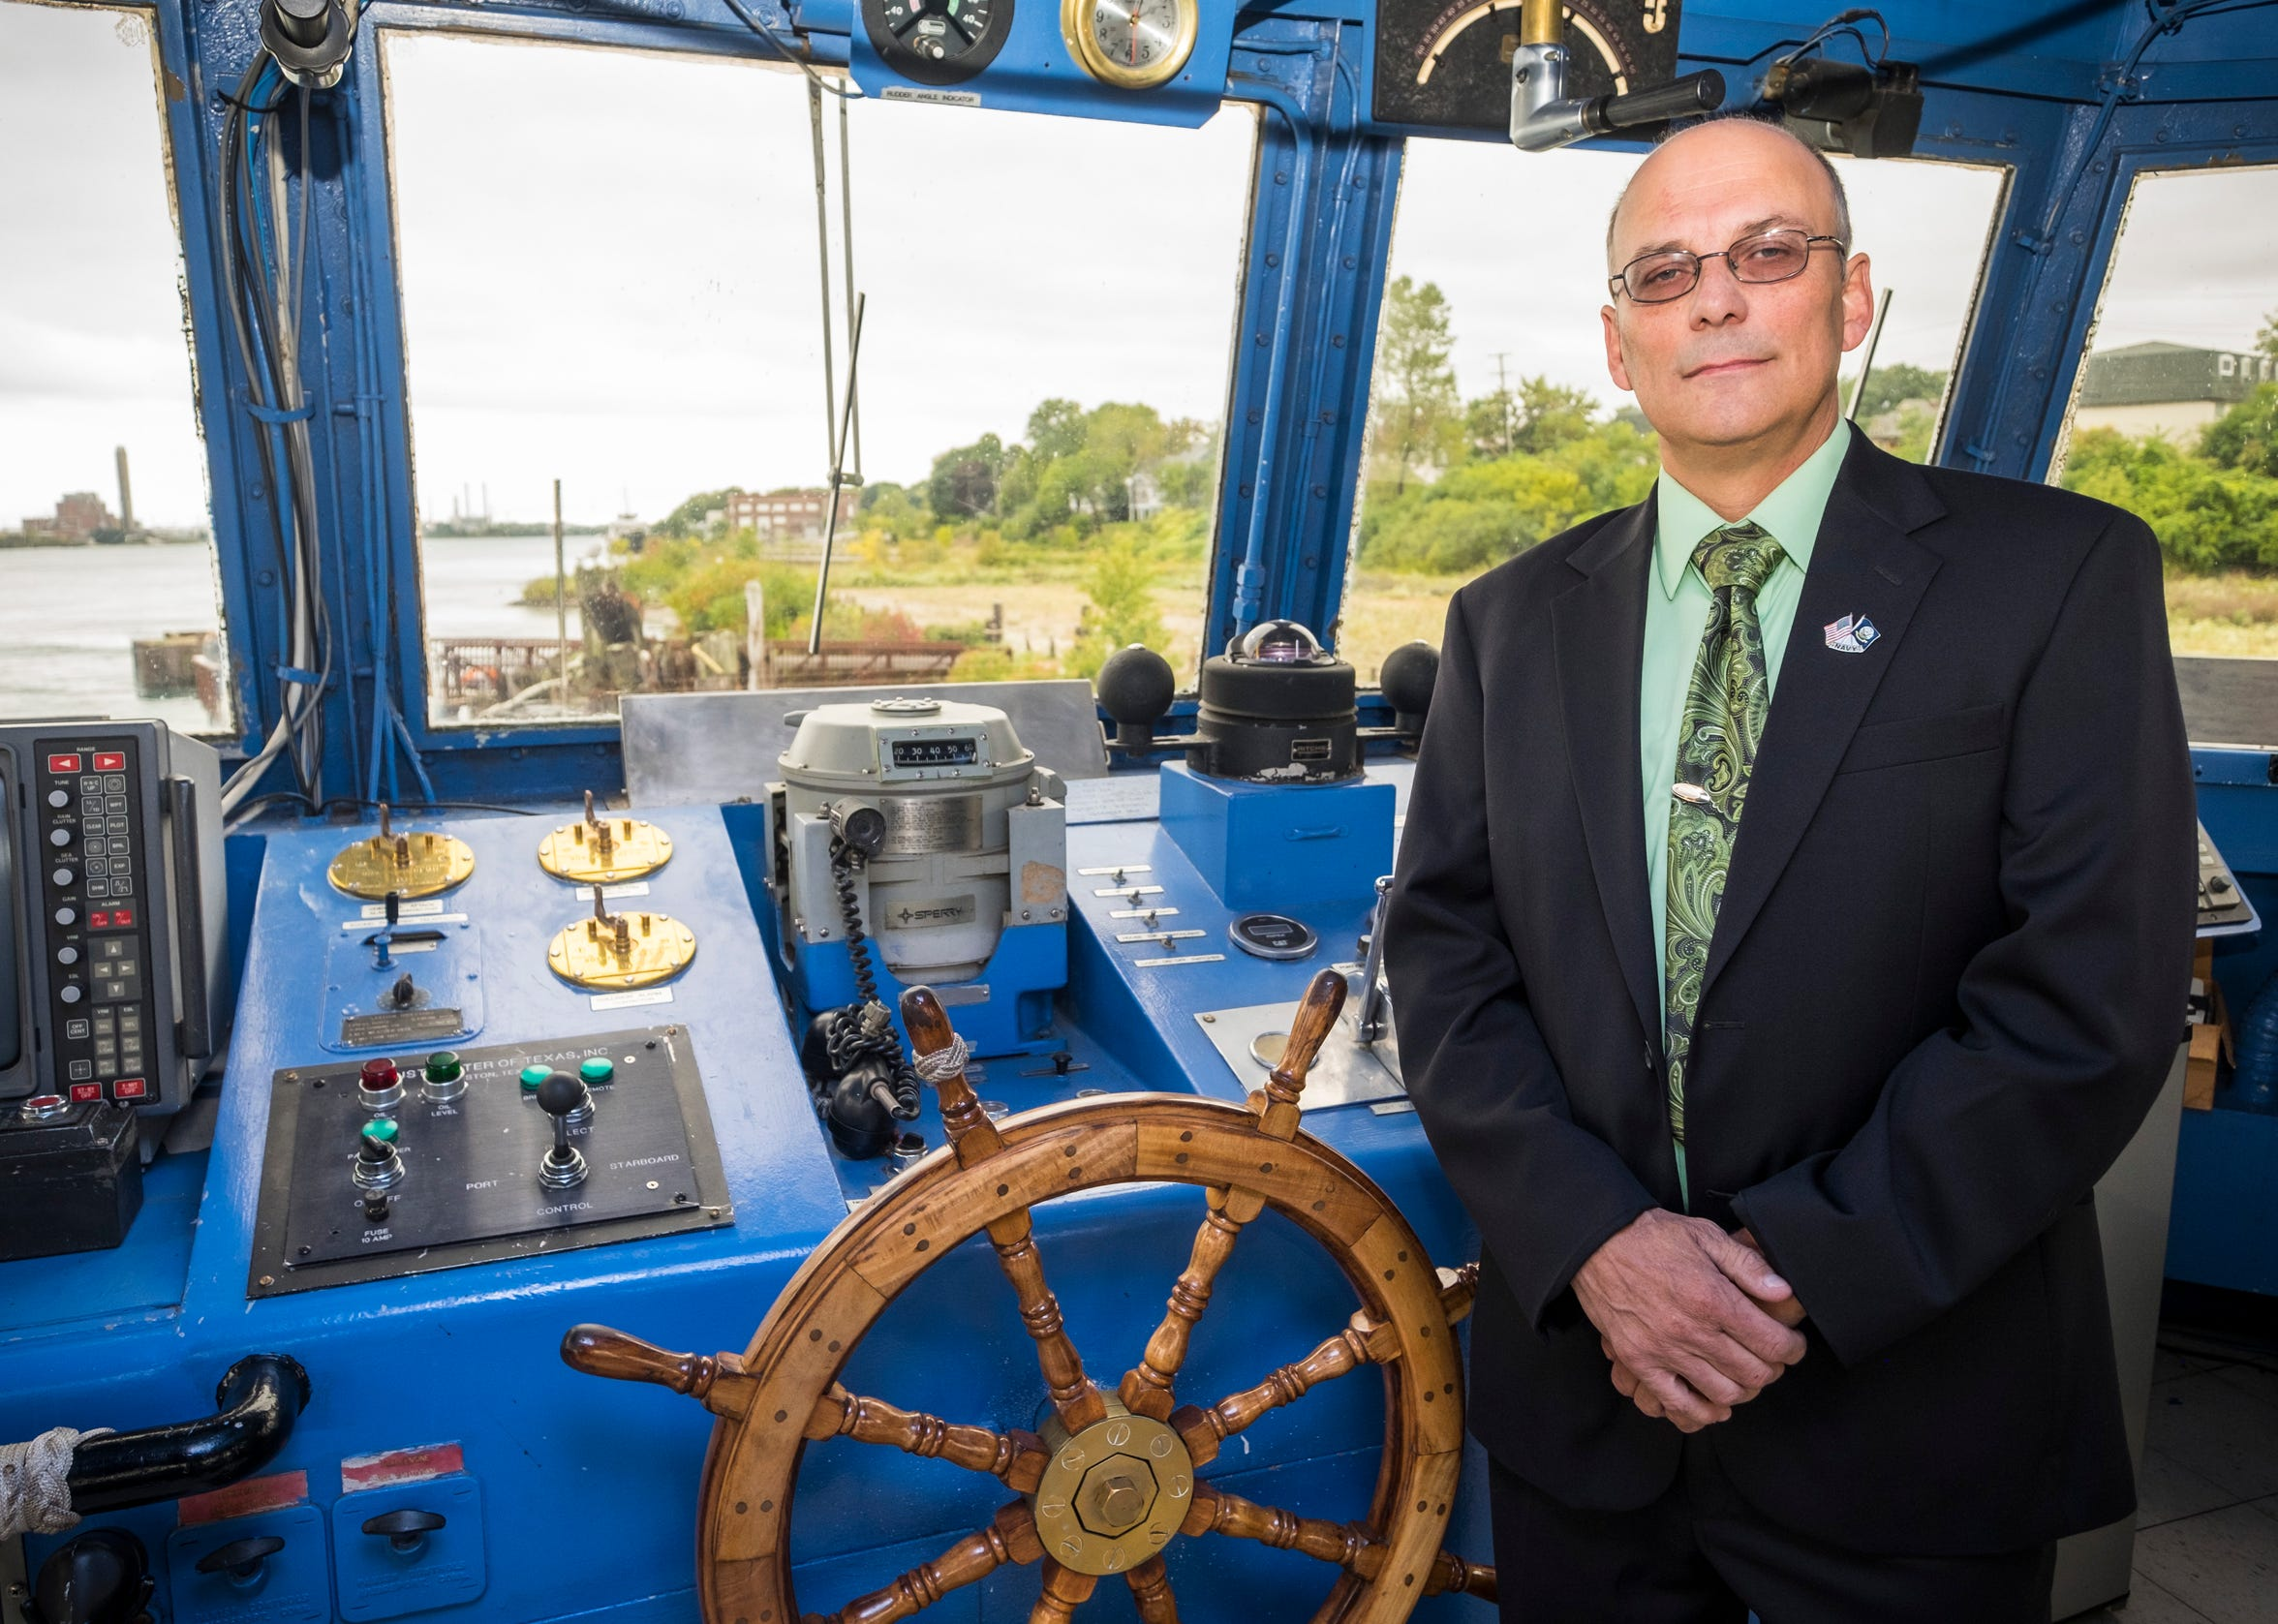 Garth Gurnsey, one of three challengers against Mayor Pauline Repp in Port Huron's city election Nov. 6, stands aboard the NSCS Gray Fox on Tuesday, Oct. 2, 2018, in Port Huron. He has previously ran unsuccessfully for mayor seven years ago.